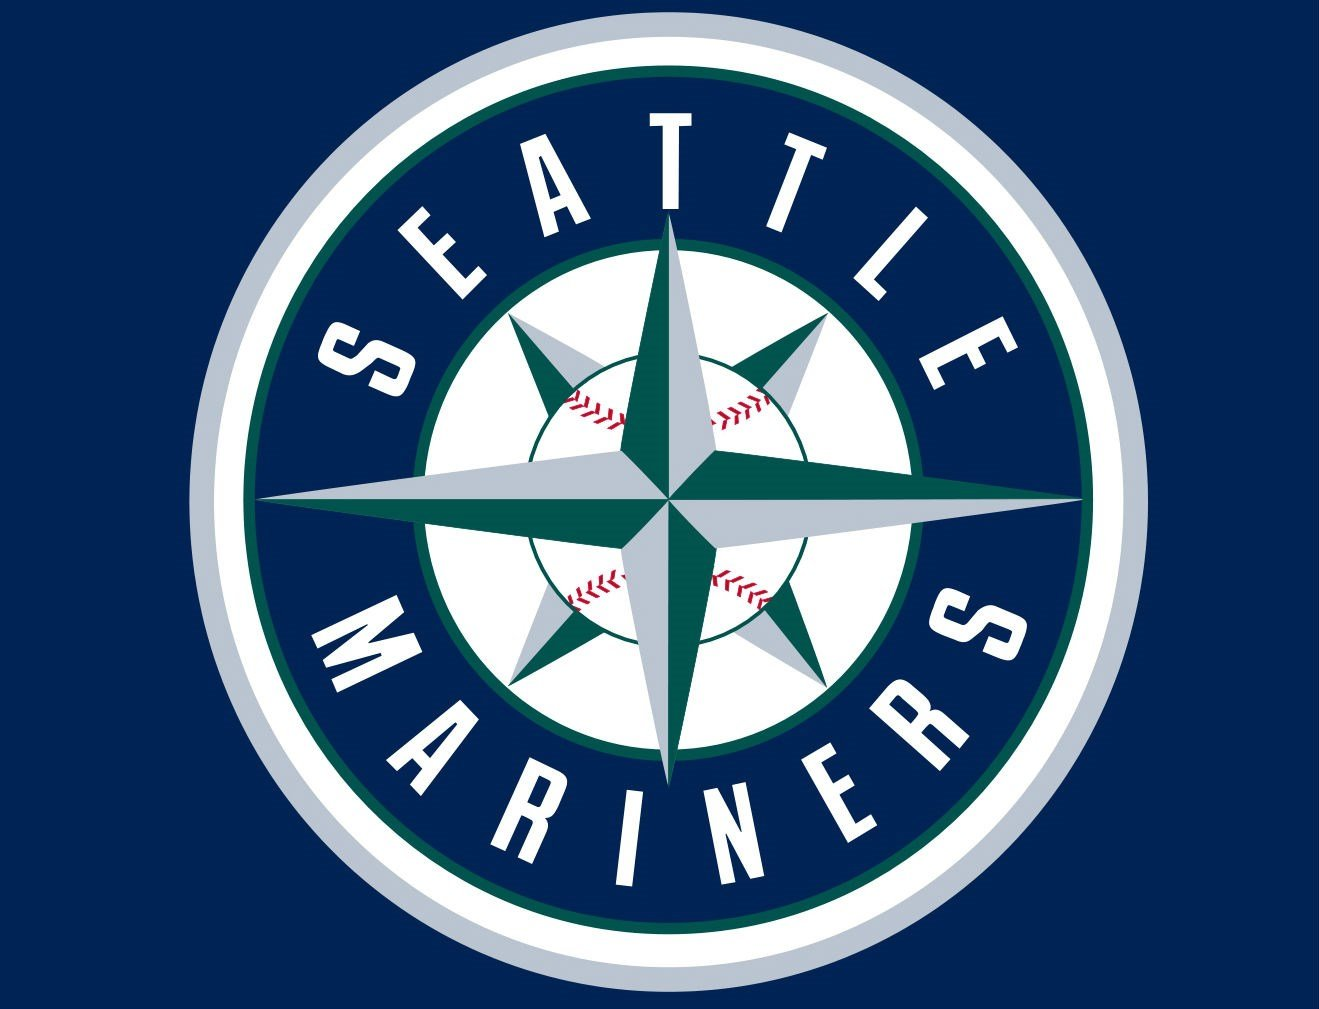 Mariners have lost their last 5 out of 6 games